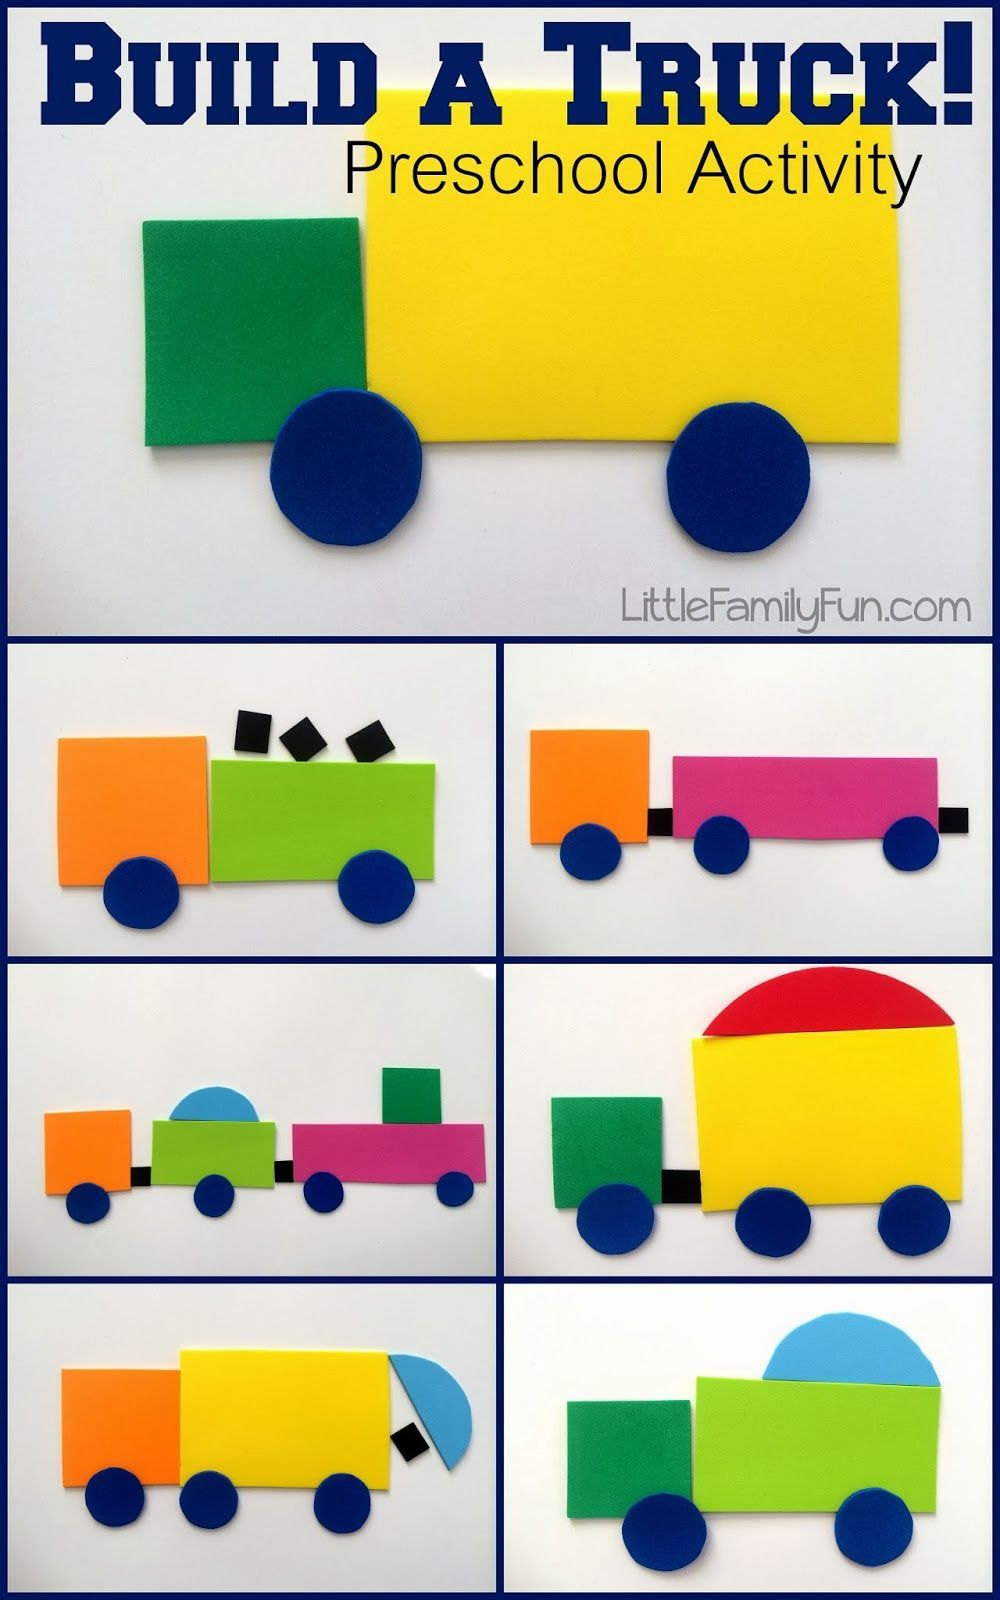 Build A Truck Fun Way To Review Shapes With Preschoolers